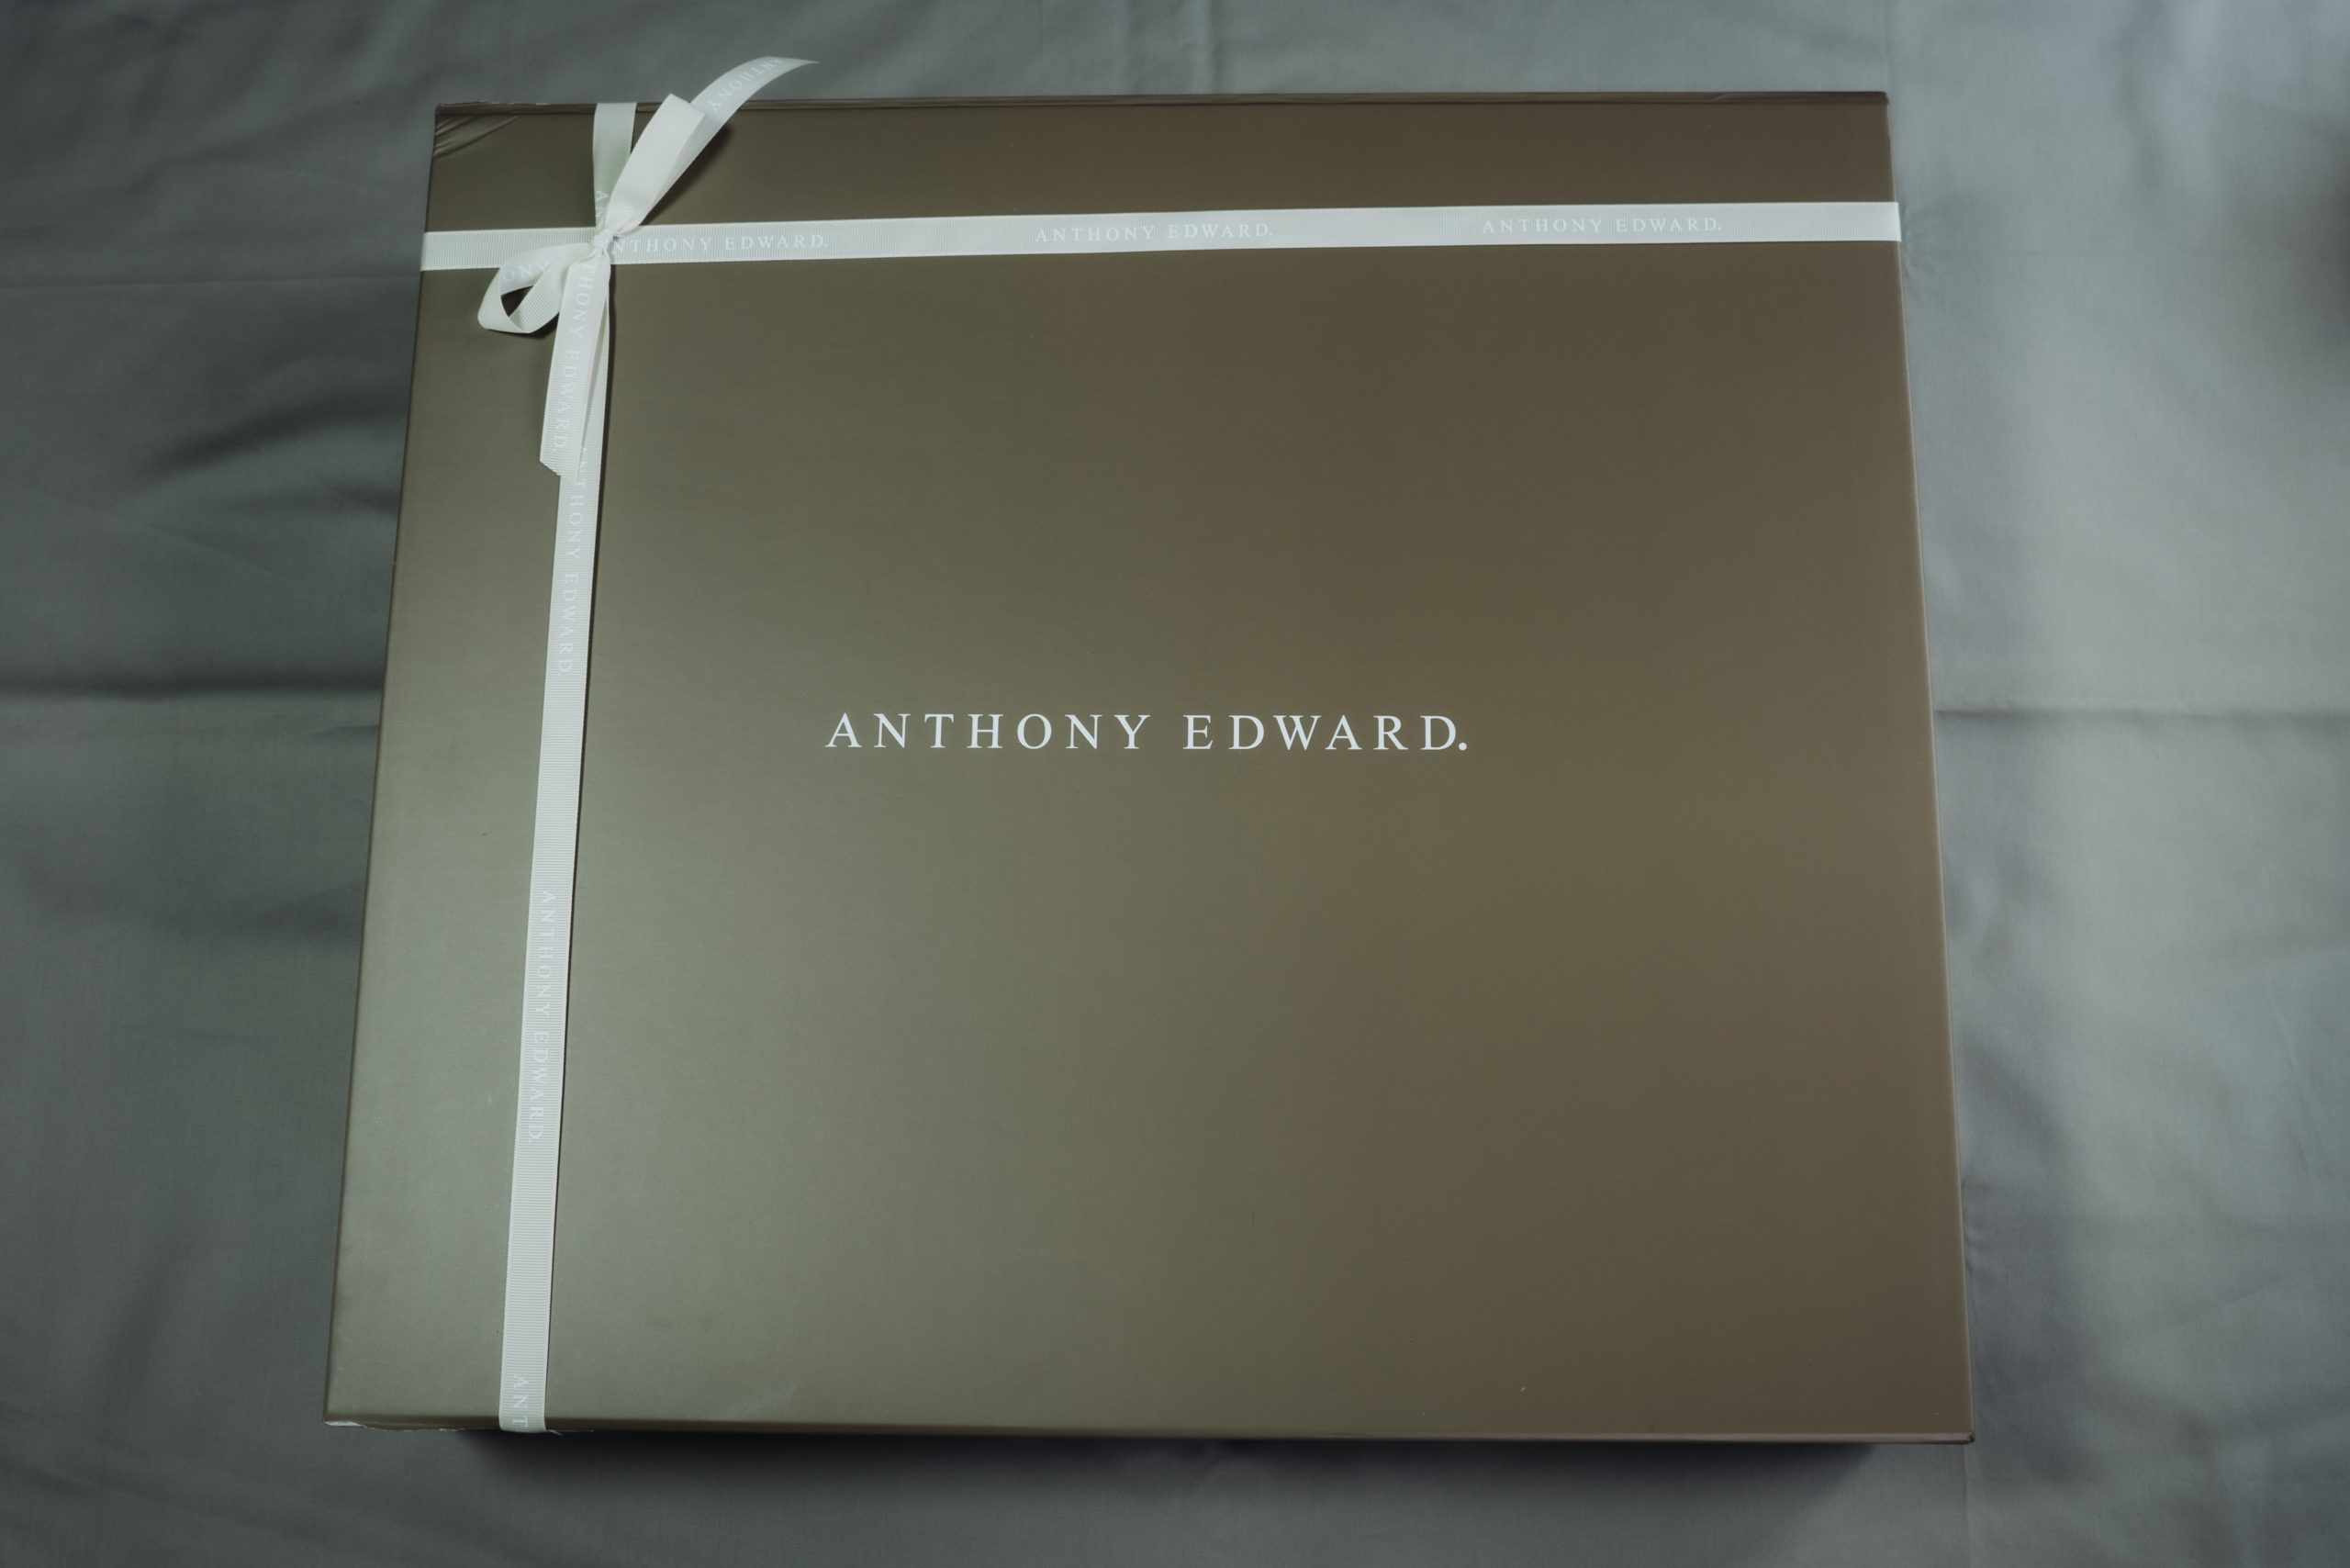 ANTHONY EDWARD ダッフルバッグの梱包